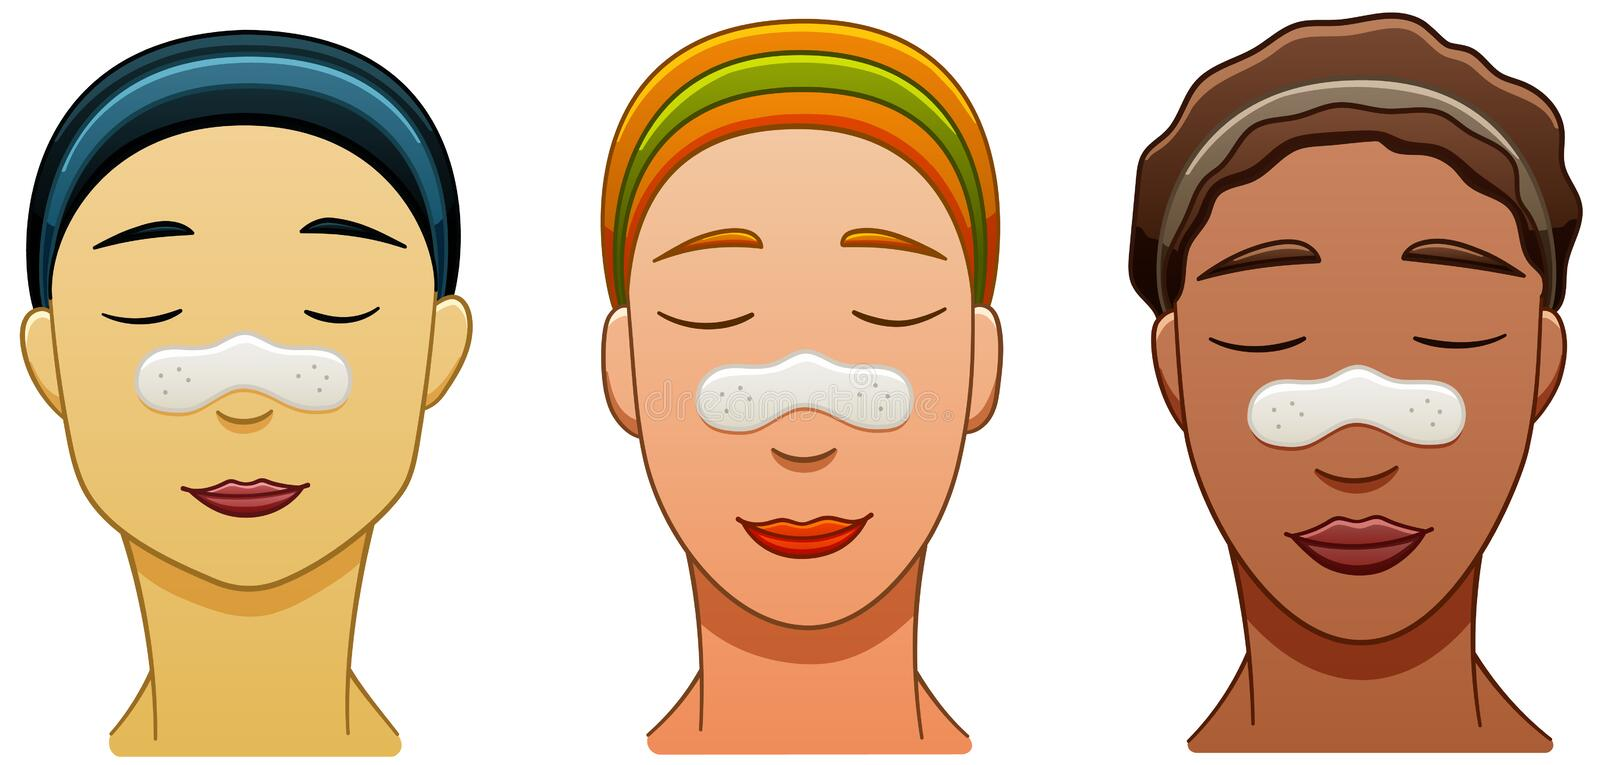 Three women with nose pore strips on their faces. Asian, European and African american smiling women with nose pore strips. White backgroun stock illustration